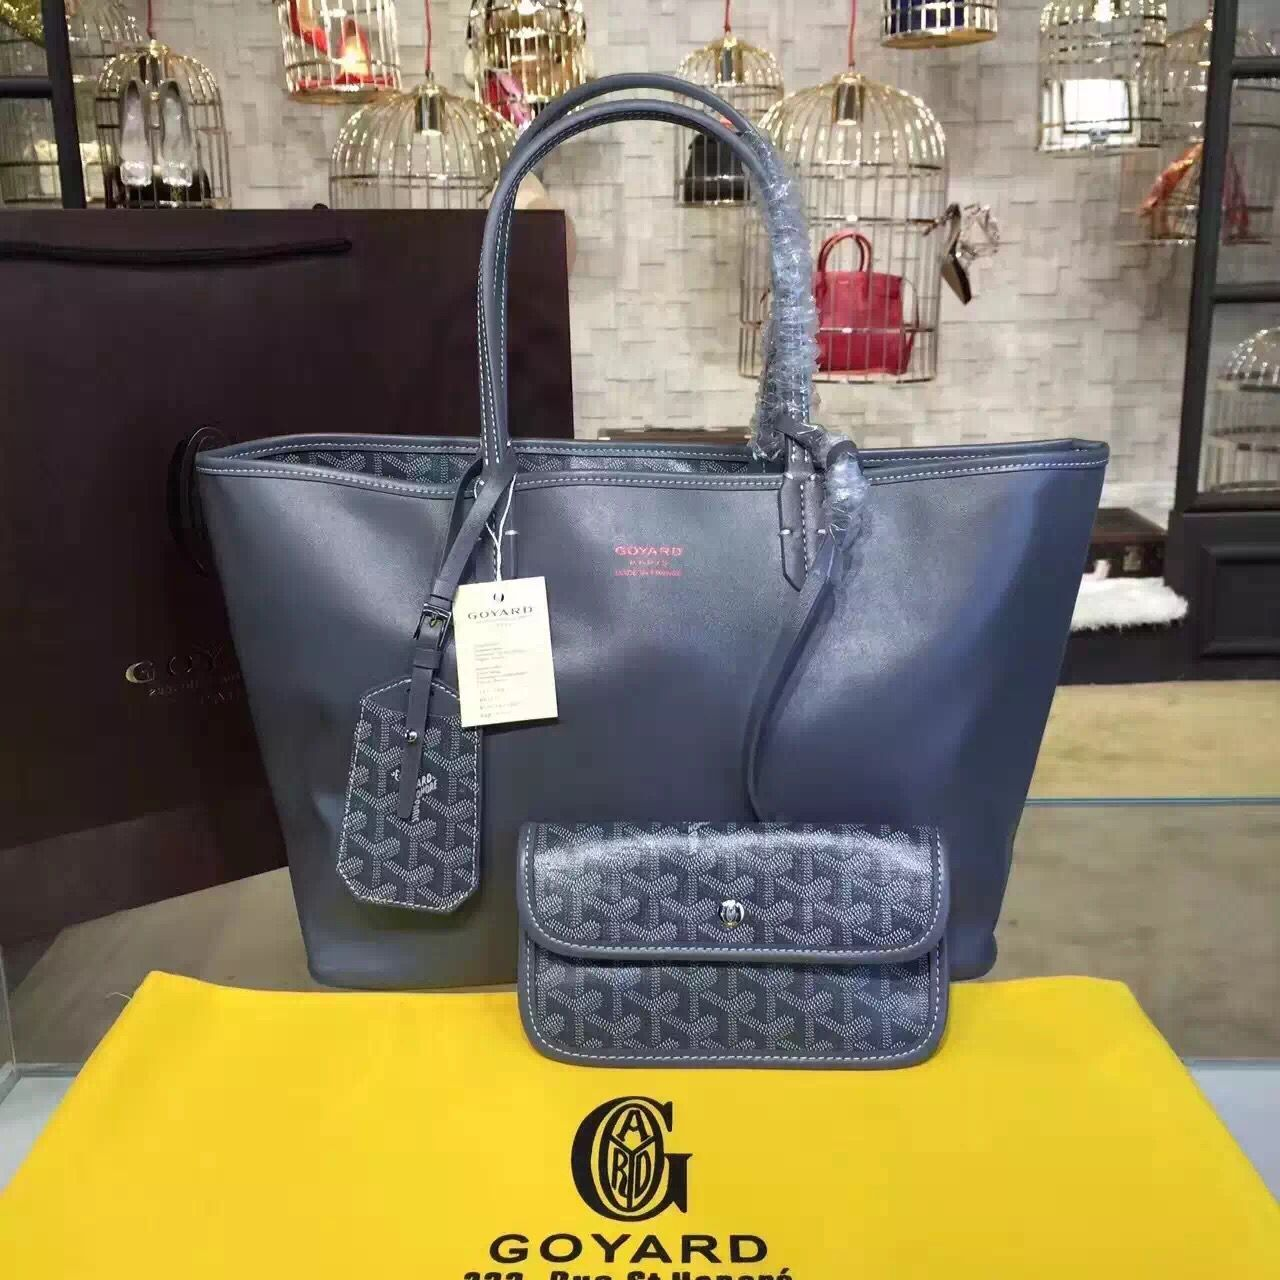 Goyard Y Doodling Calfskin Leather Tote Bag 7901 Dark Blue